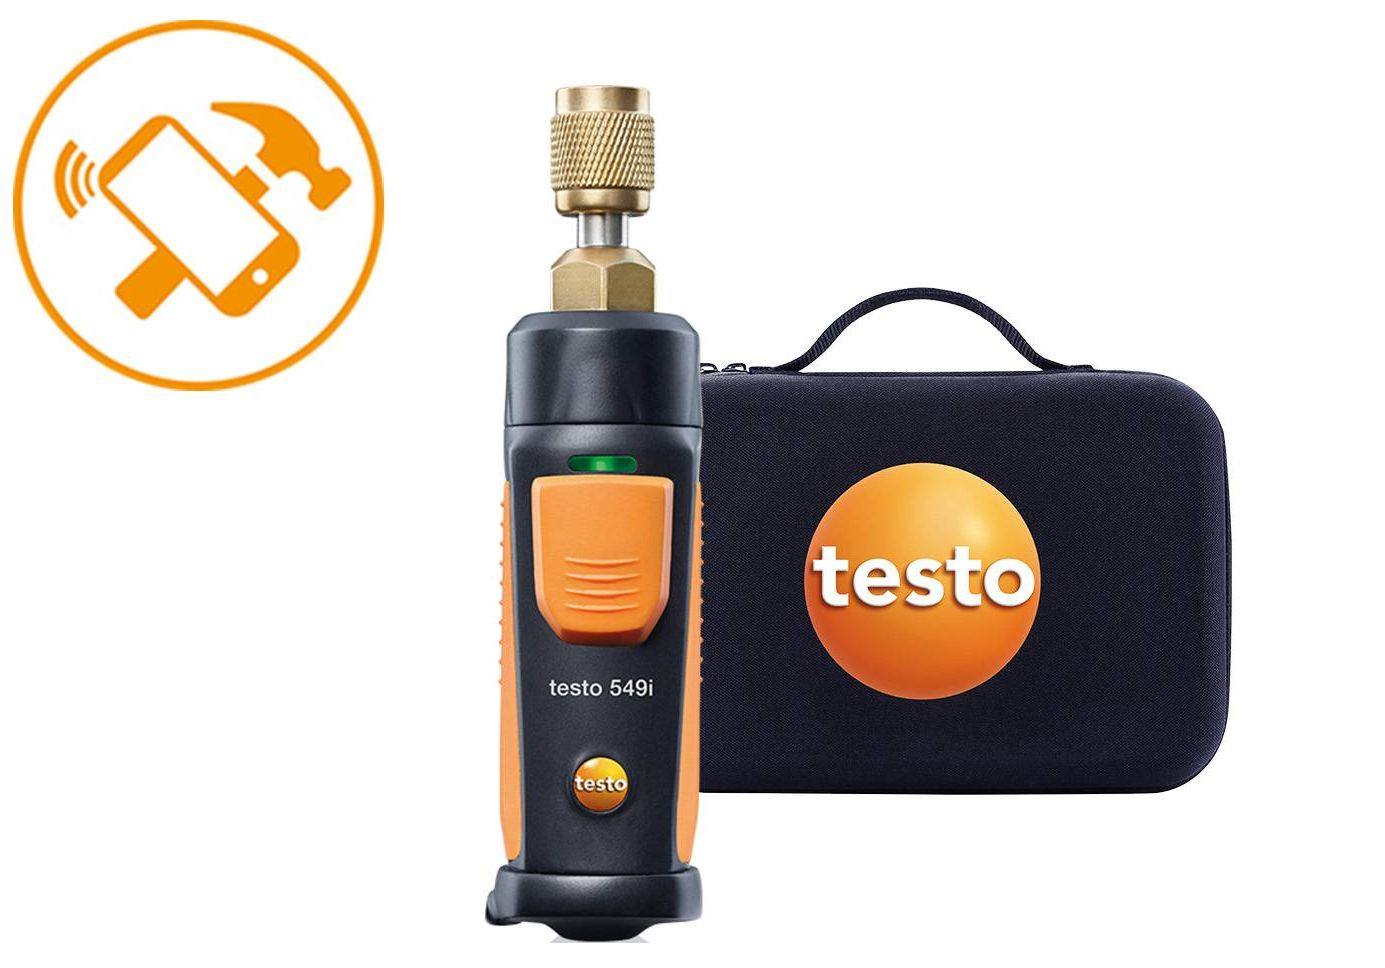 testo Smart Probes Set Anwendungs-Highlight Druckmessung